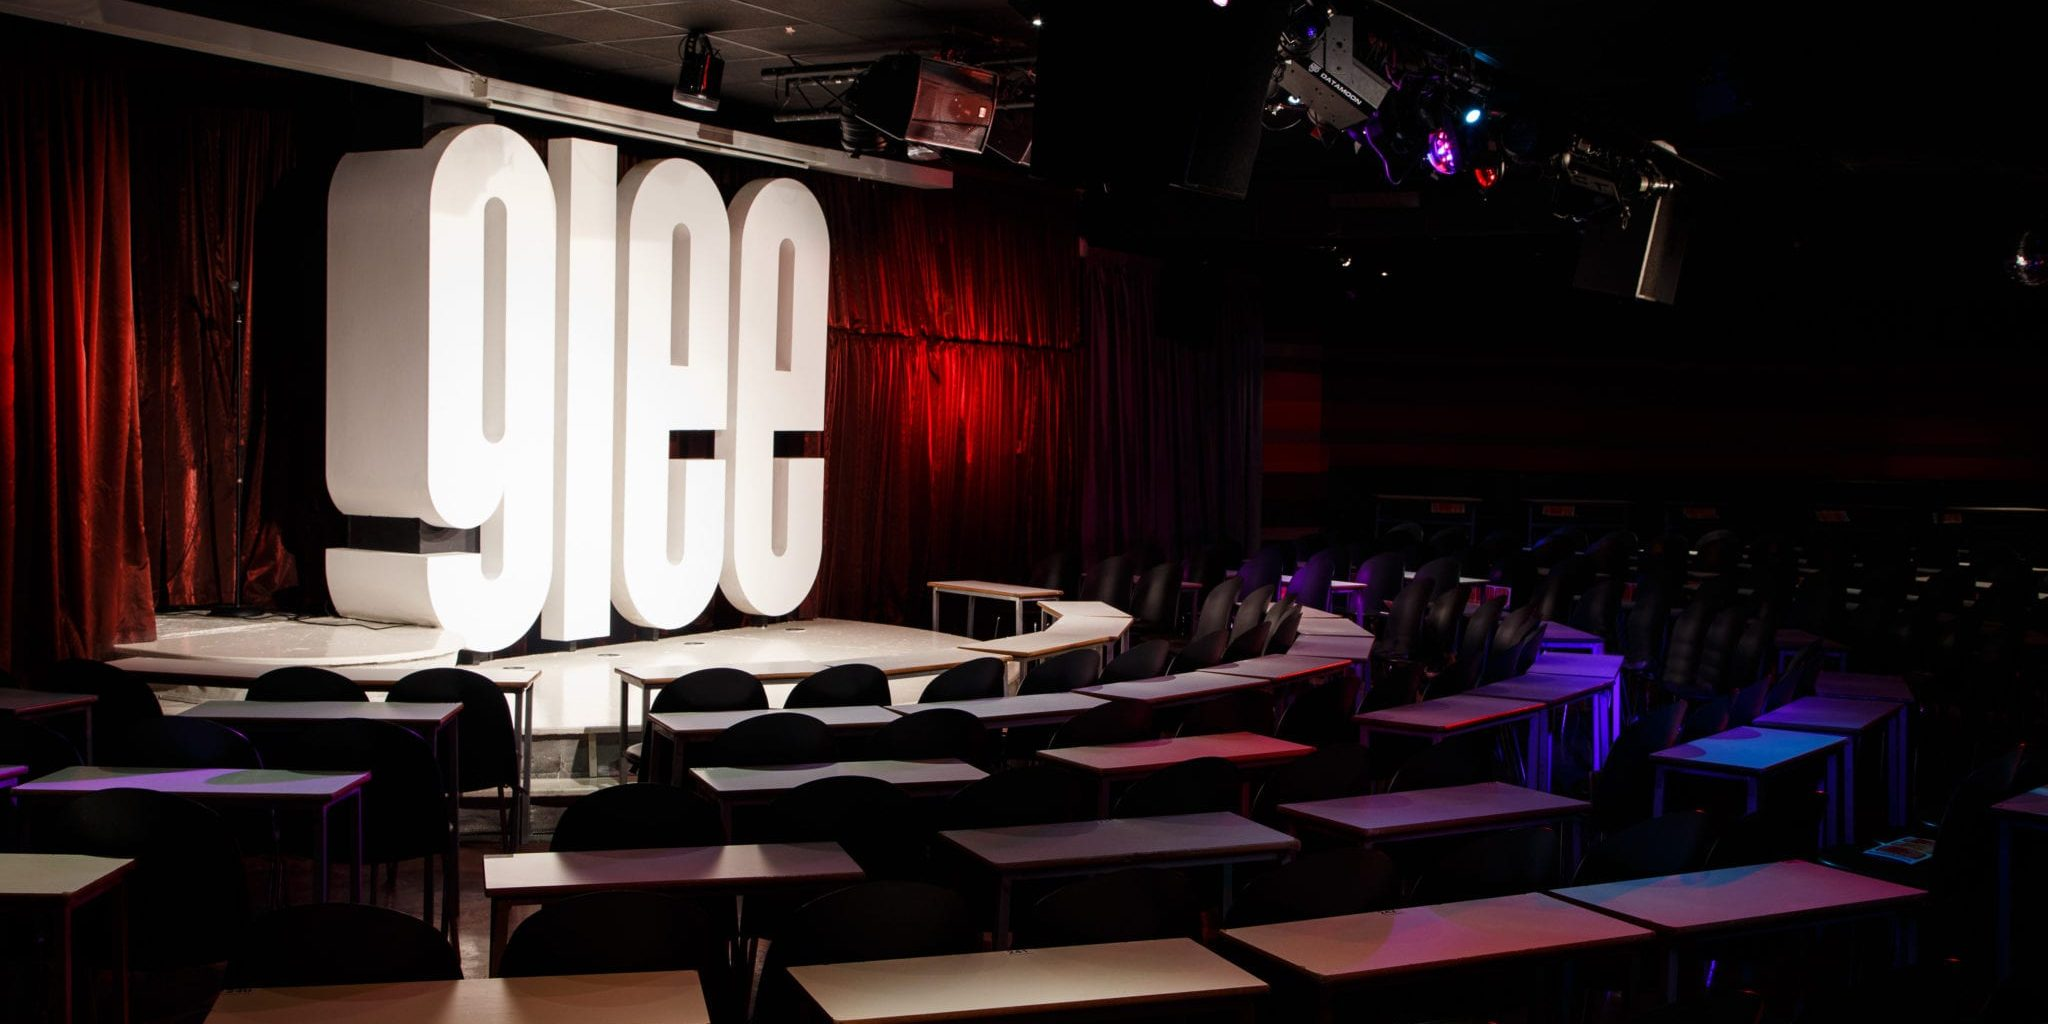 Glee_Club_ Main_Room_Stage 3 (Jack Spicer Adams 2014)